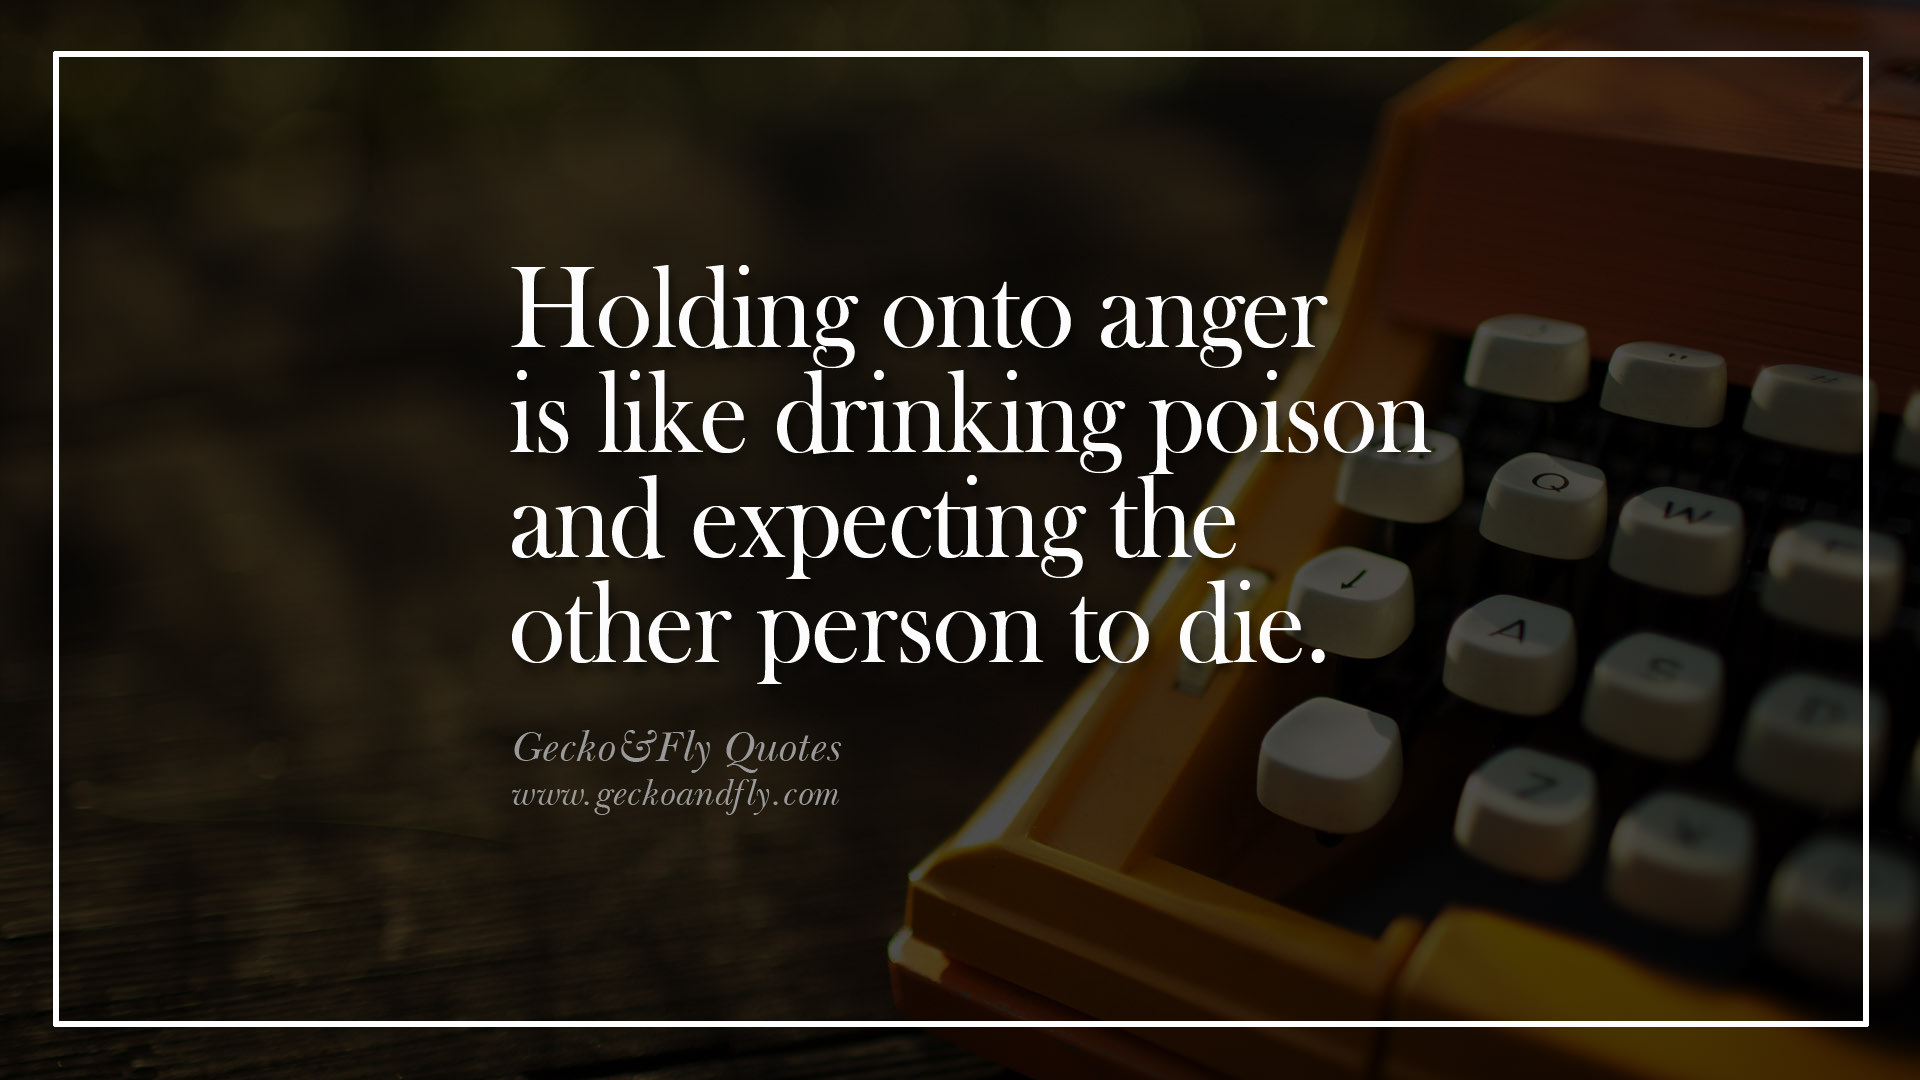 Quotes About Anger And Rage: Quotes About Holding Onto Anger. QuotesGram